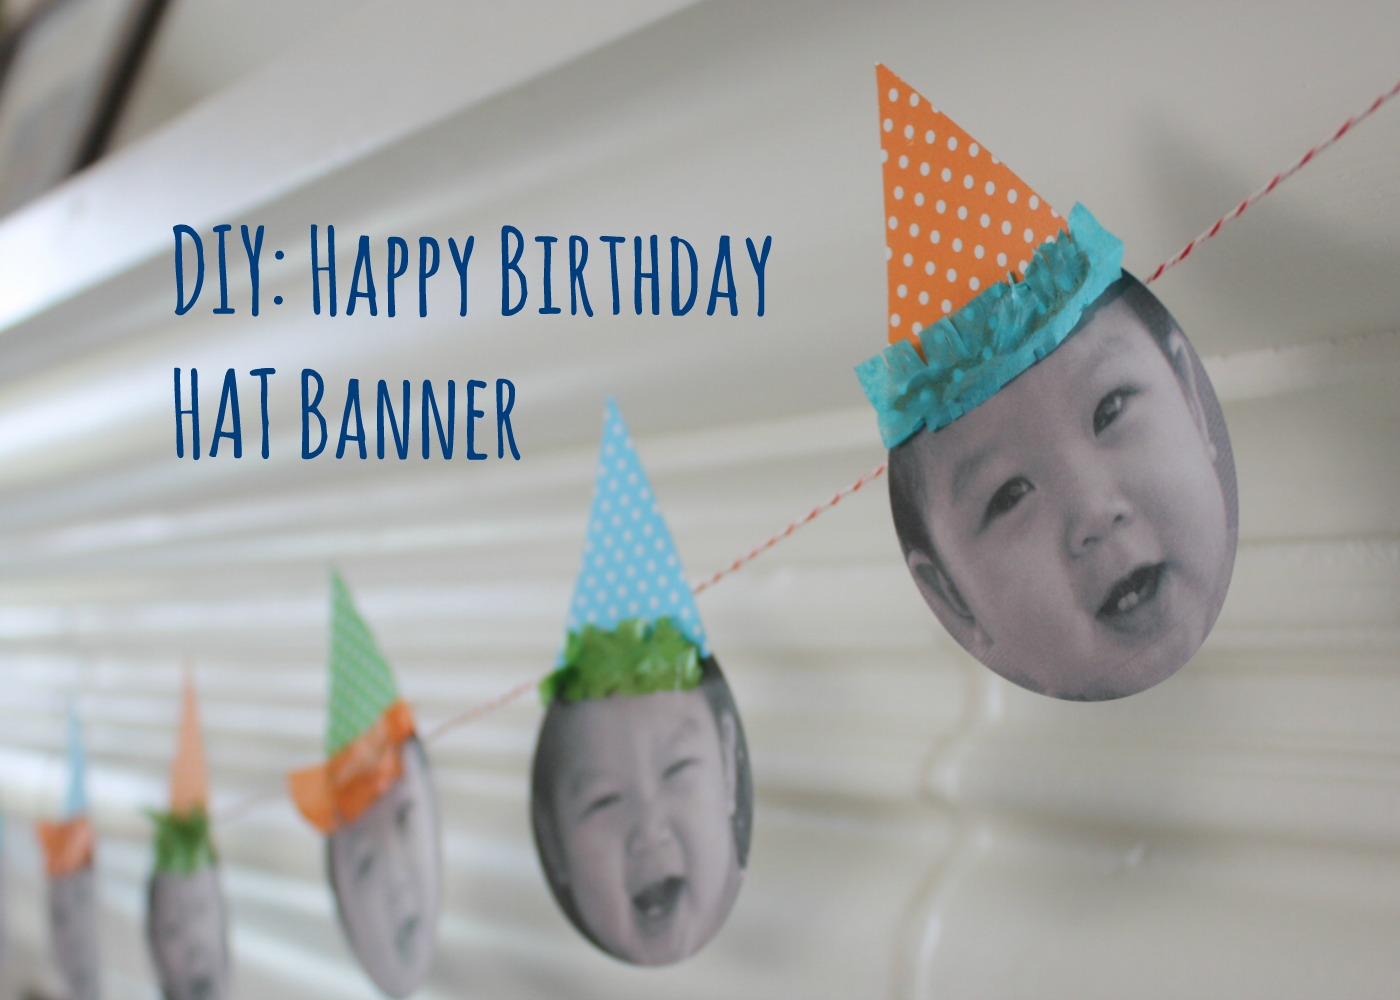 birthday photo banner diy ; say-it-out-loud-adorable-homemade-birthday-banners-16